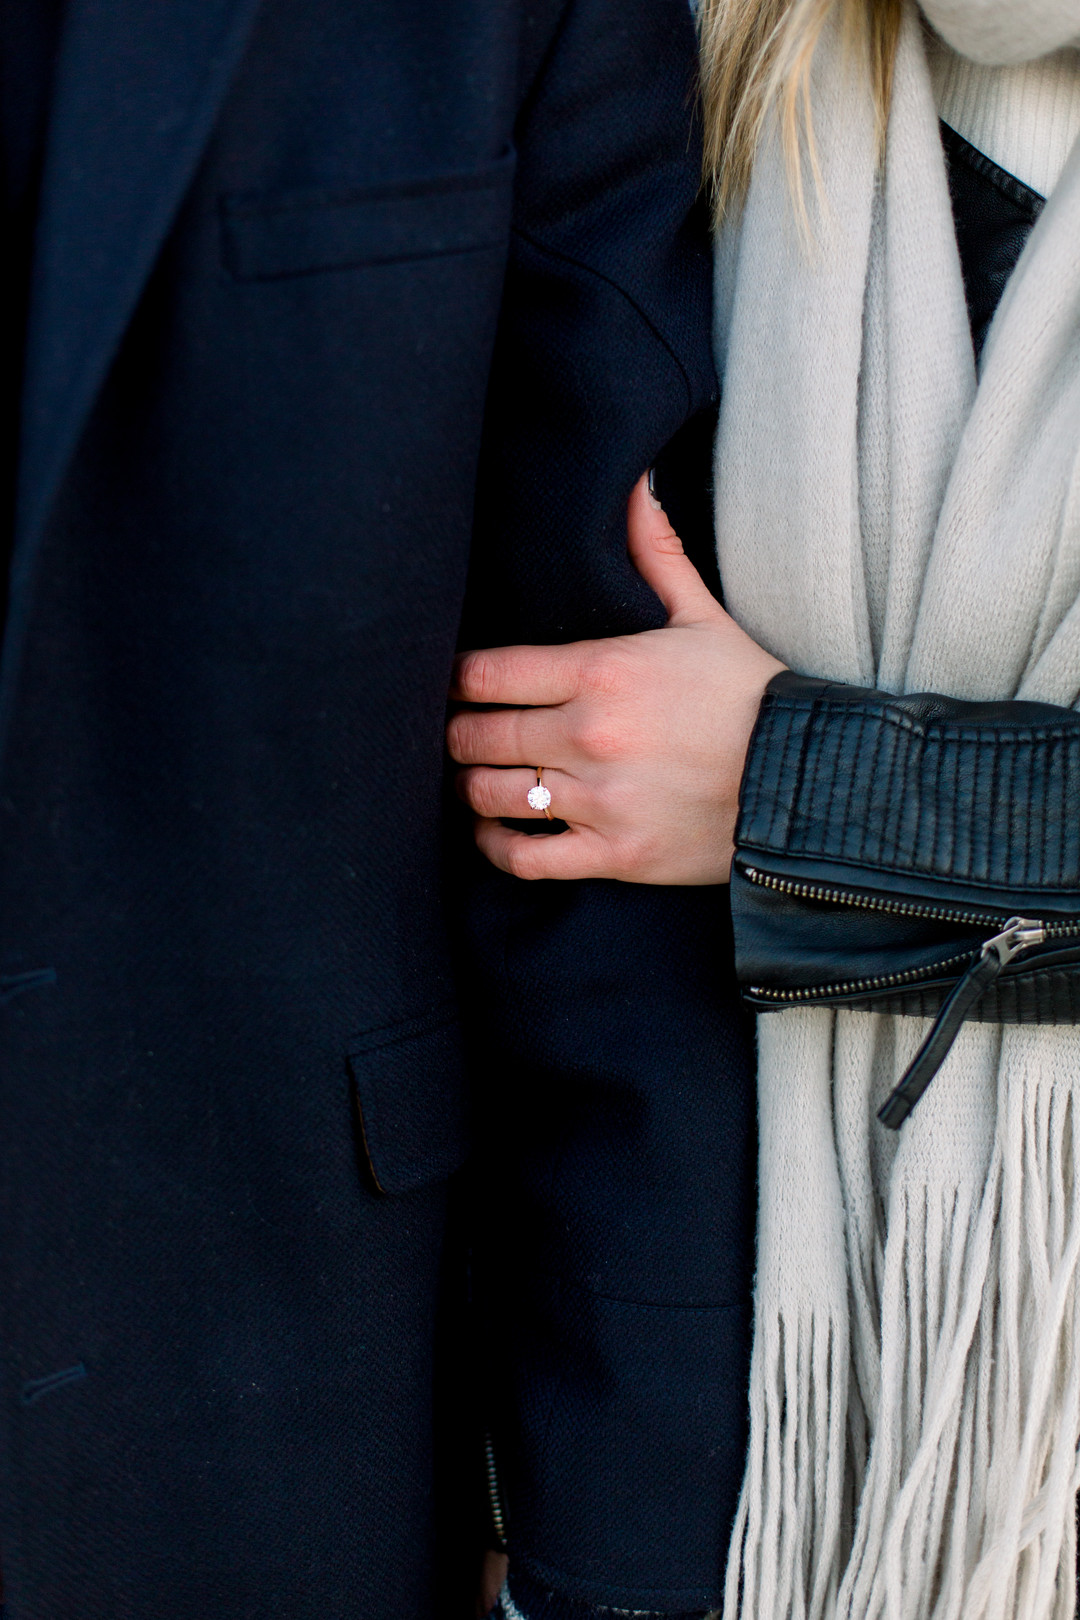 Solitaire Engagement Ring Chicago North Avenue Beach Proposal Nicole Morisco Photography